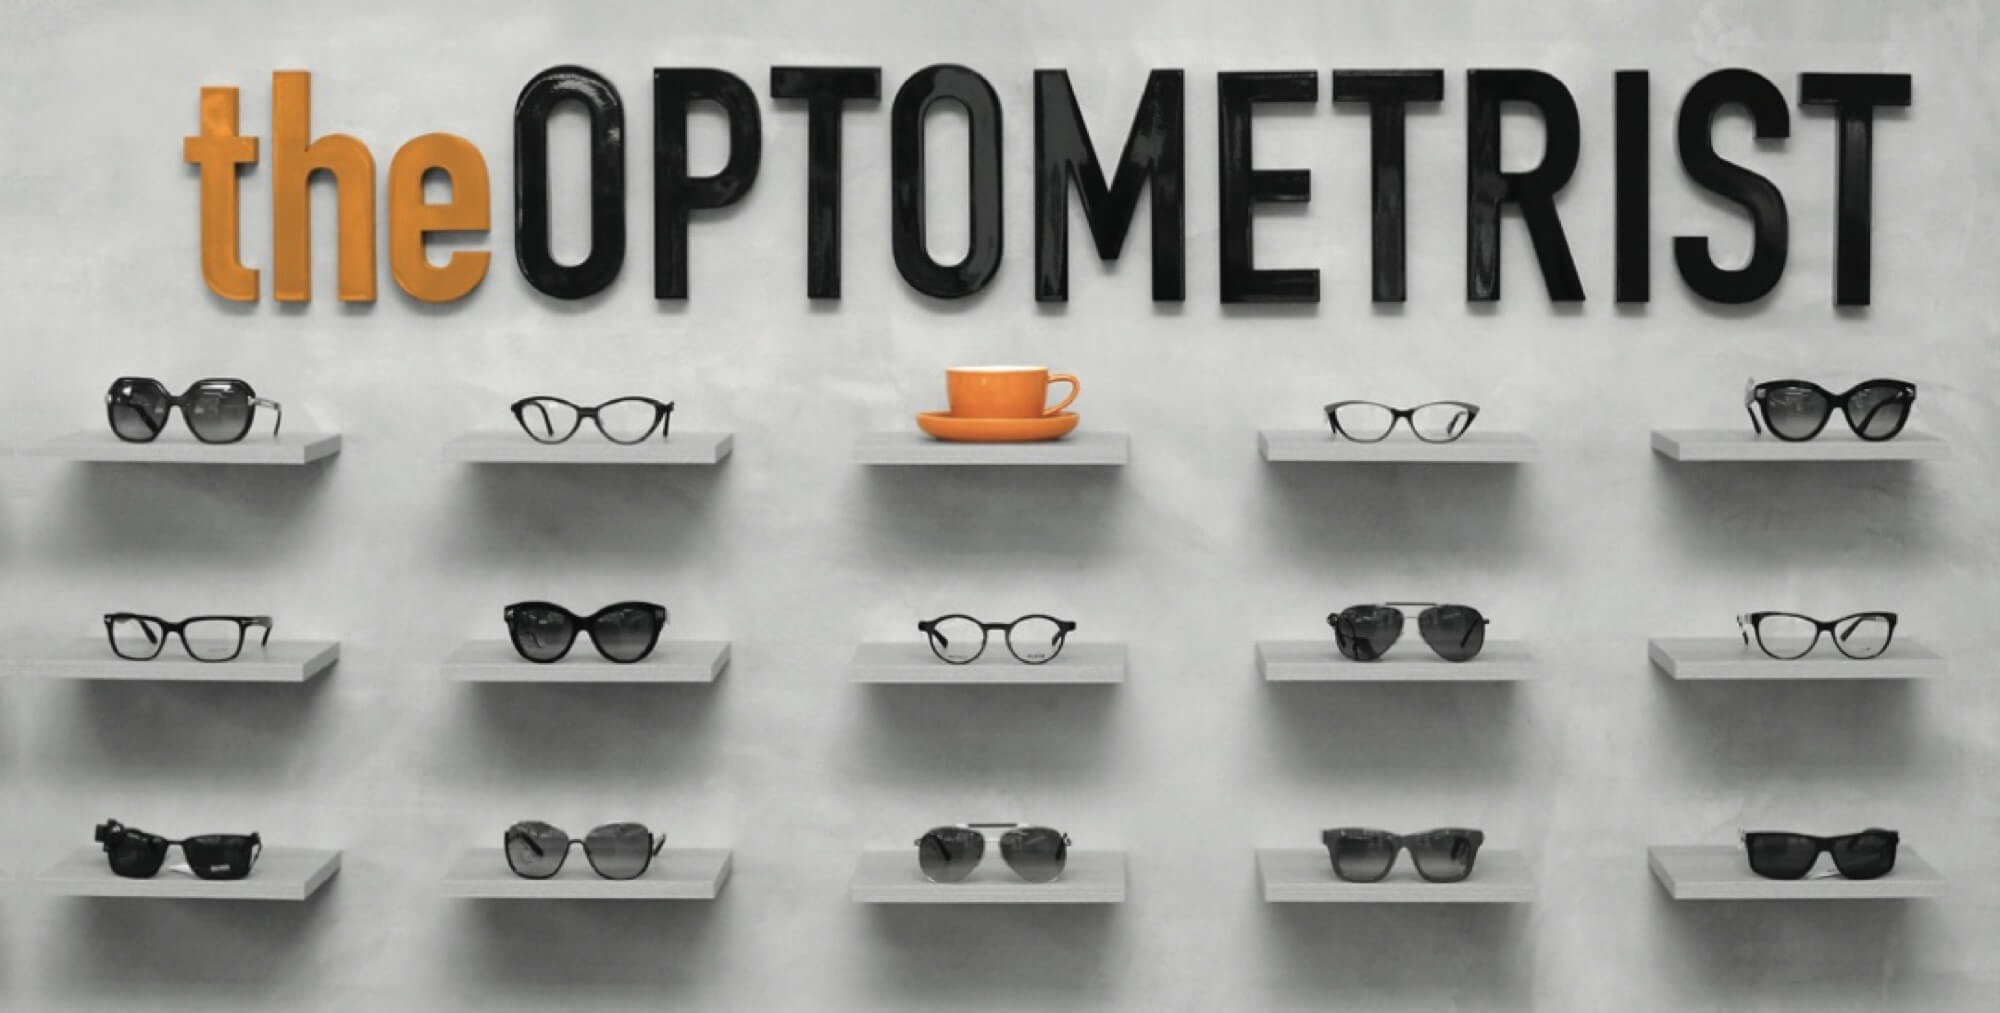 a73c60a9808a Brands Available In Store - The Optometrist